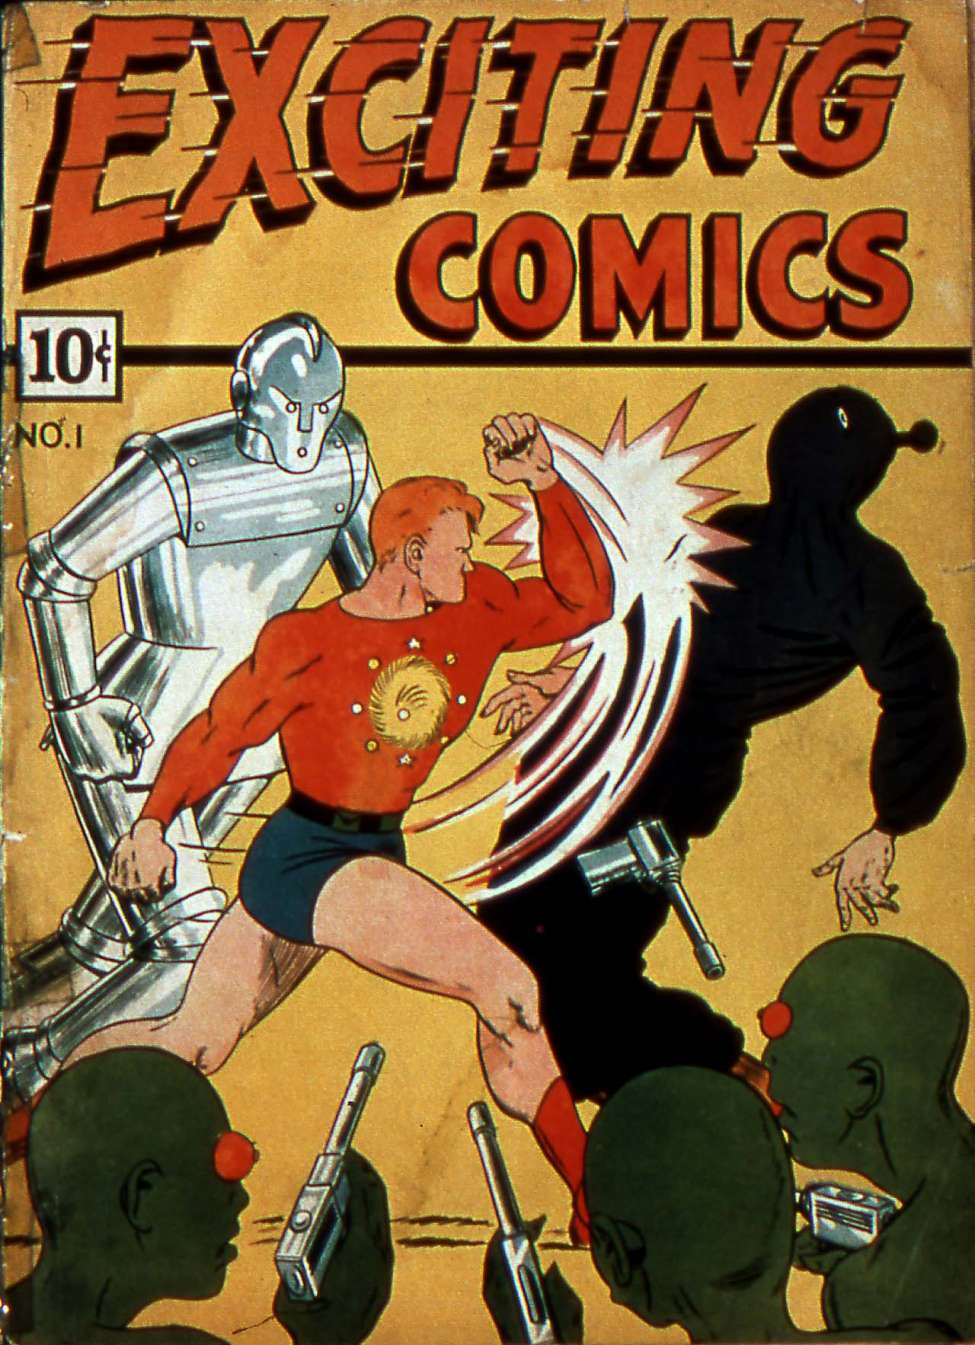 Comic Book Cover For Exciting Comics v1 1 (1)